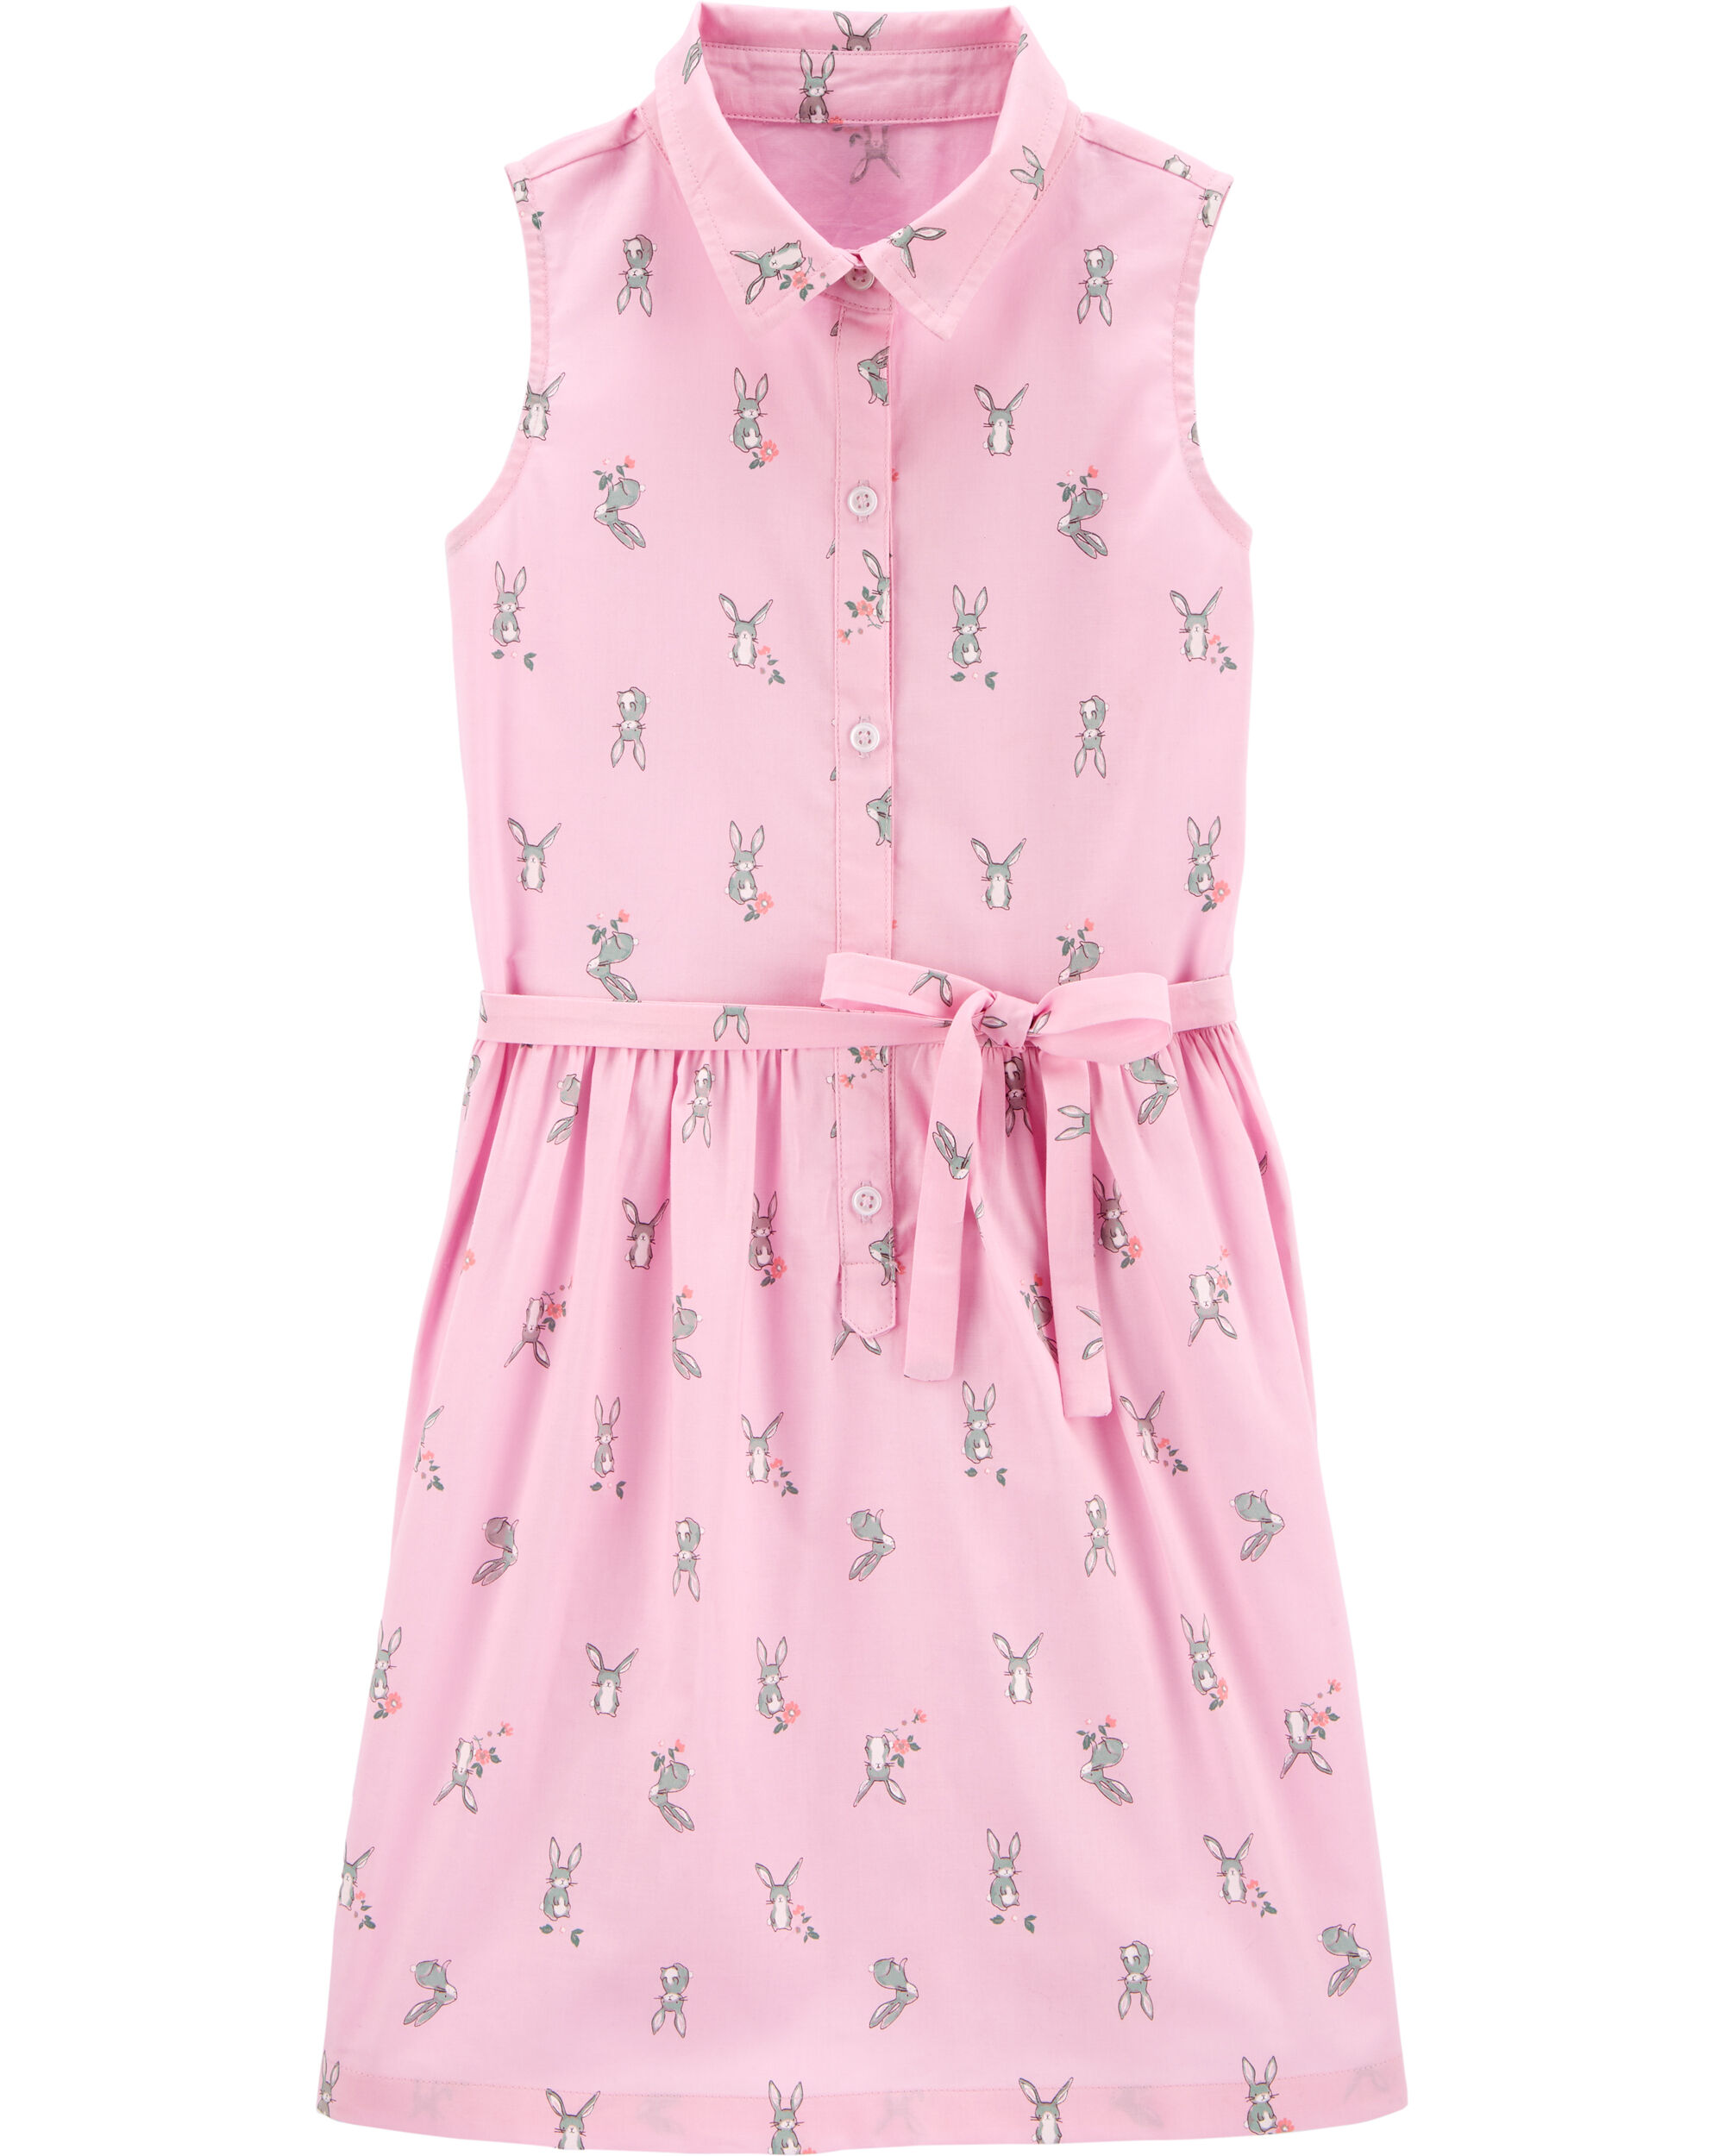 Easter Bunny Shirt Dress